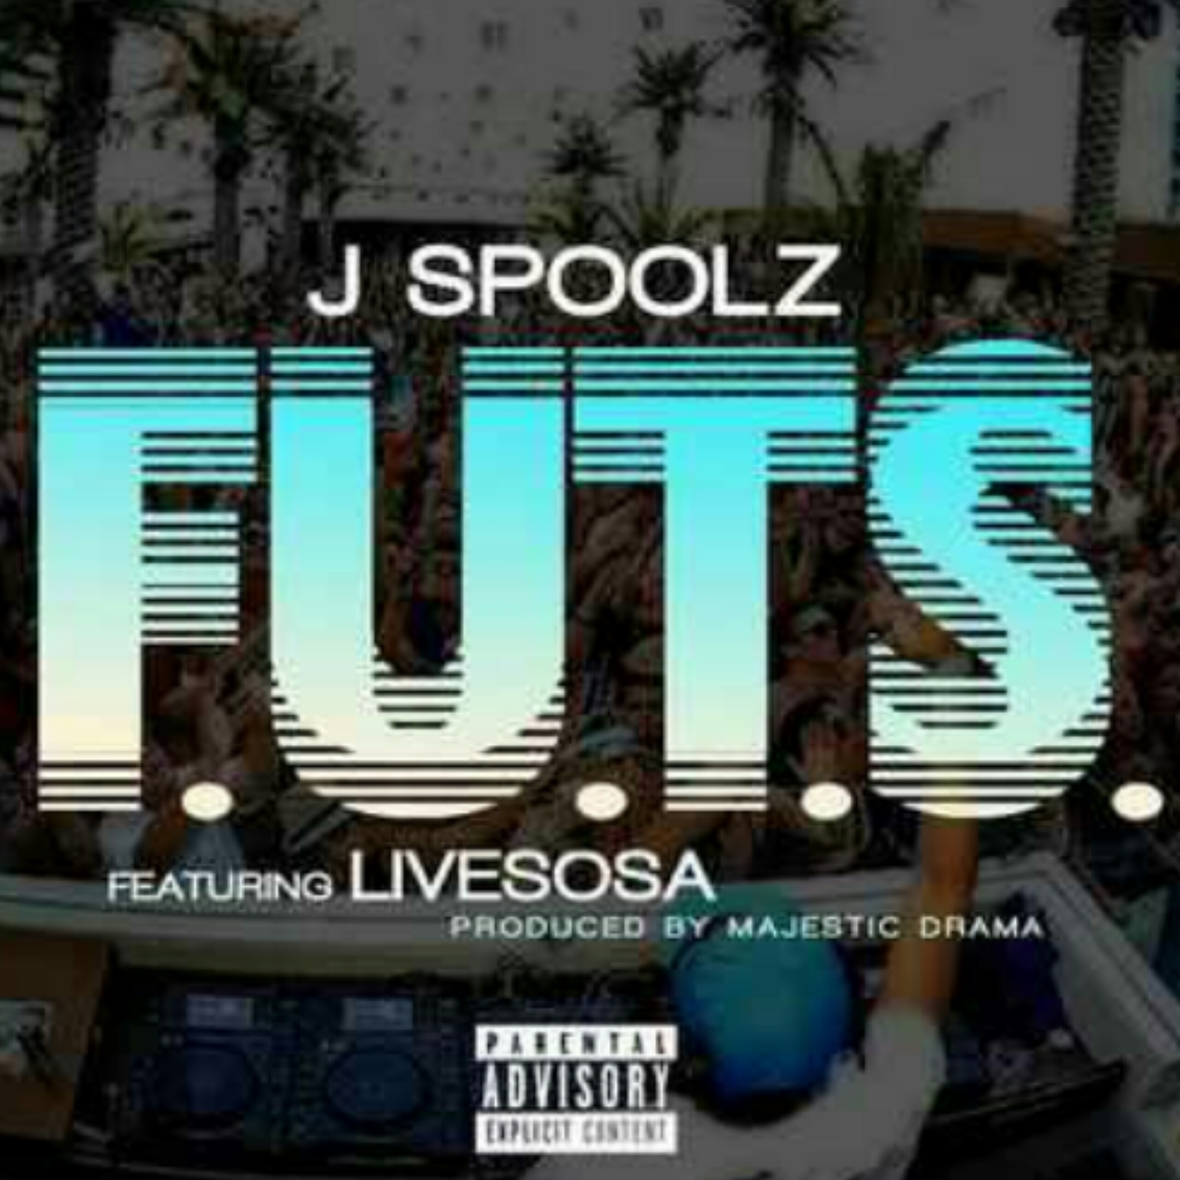 J Spoolz - F.U.T.S. artwork